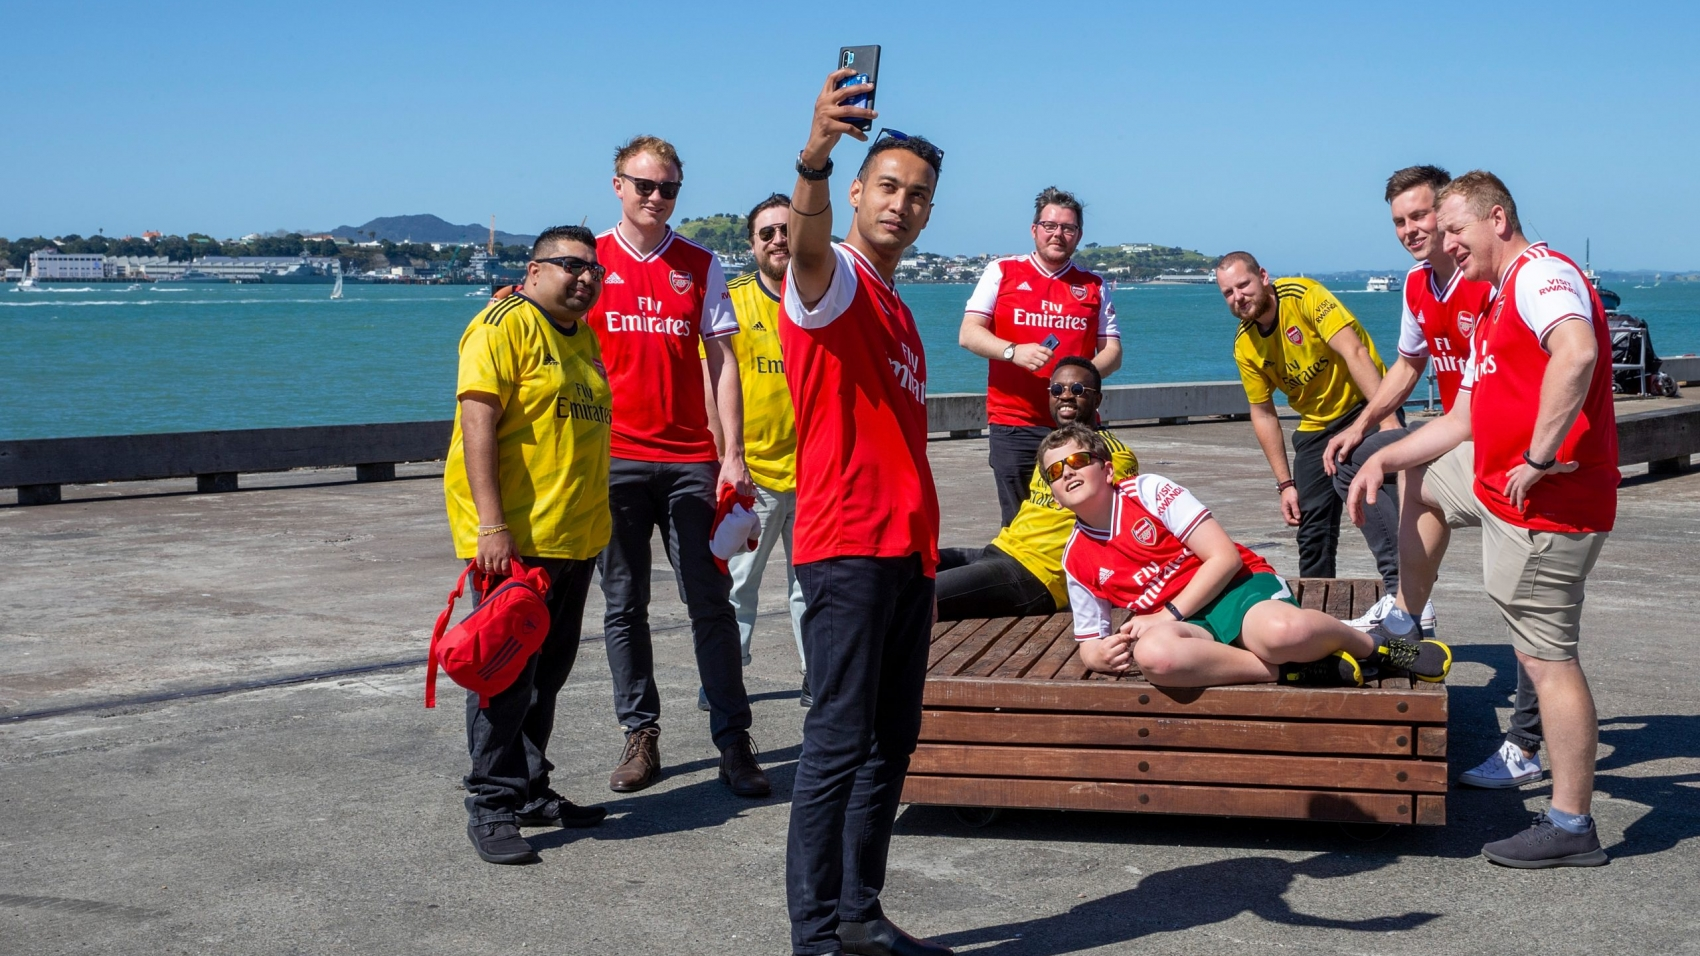 AUCKLAND, NEW ZEALAND - OCTOBER 27: Arsenal New Zealand Supporters Club on October 27, 2019 in Auckland, New Zealand. (Photo by Dave Rowland/Getty Images)